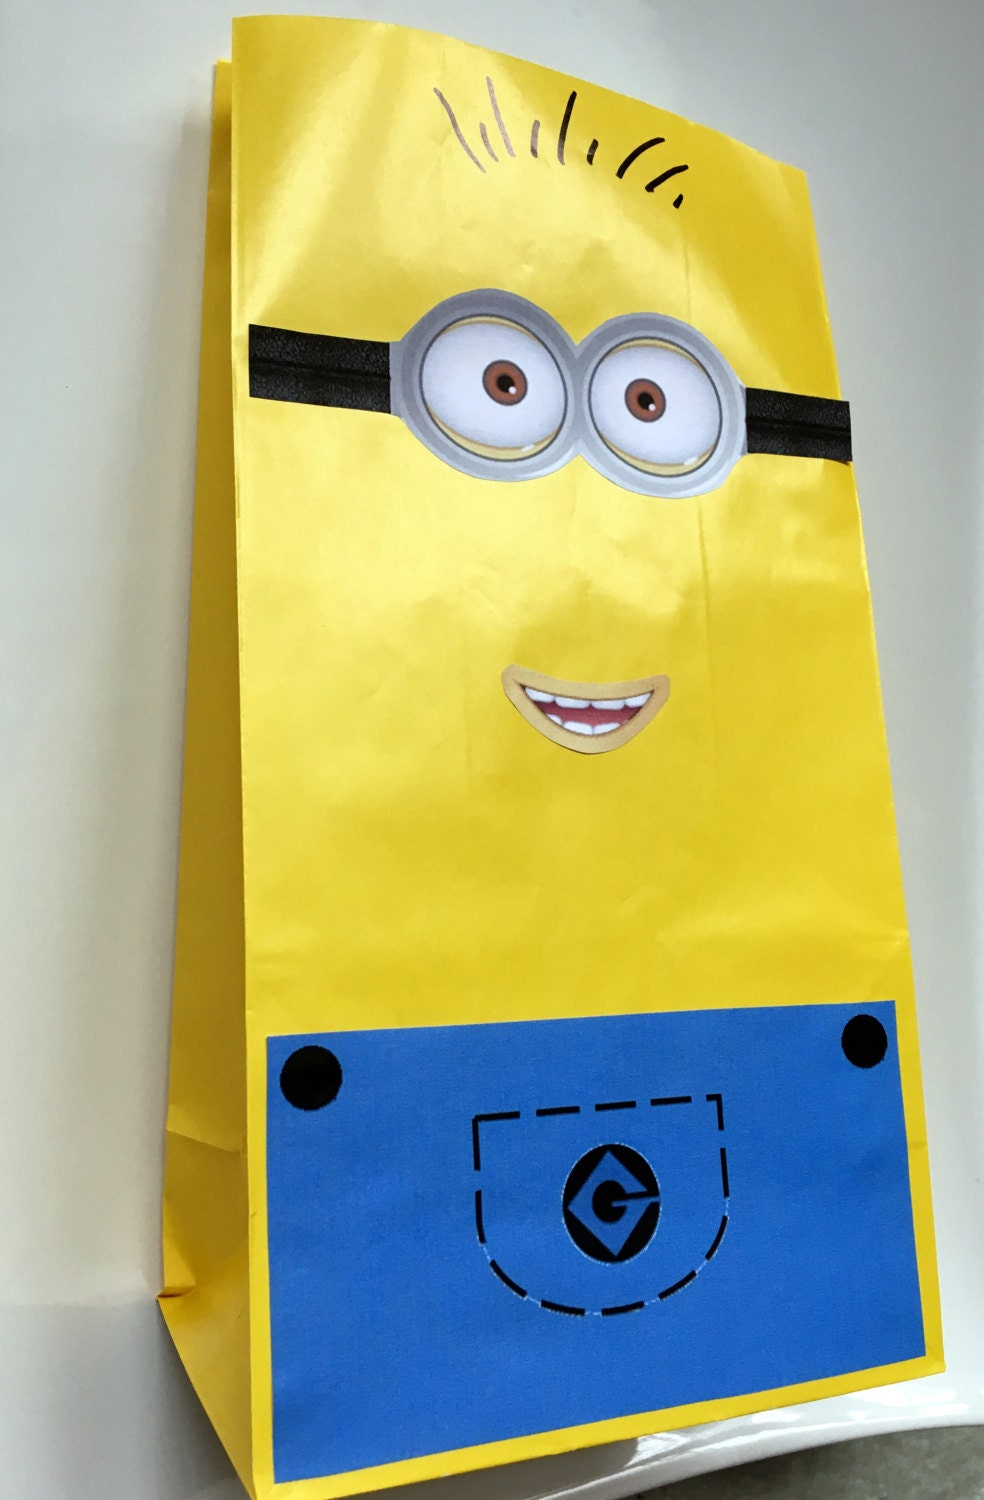 photograph regarding Printable Minions Eyes called Minion Despicable me motivated thought for youngsters birthday Occasion- Develop a Minion Choose Bag PRINTABLE Quick Down load eyes mouth and overalls